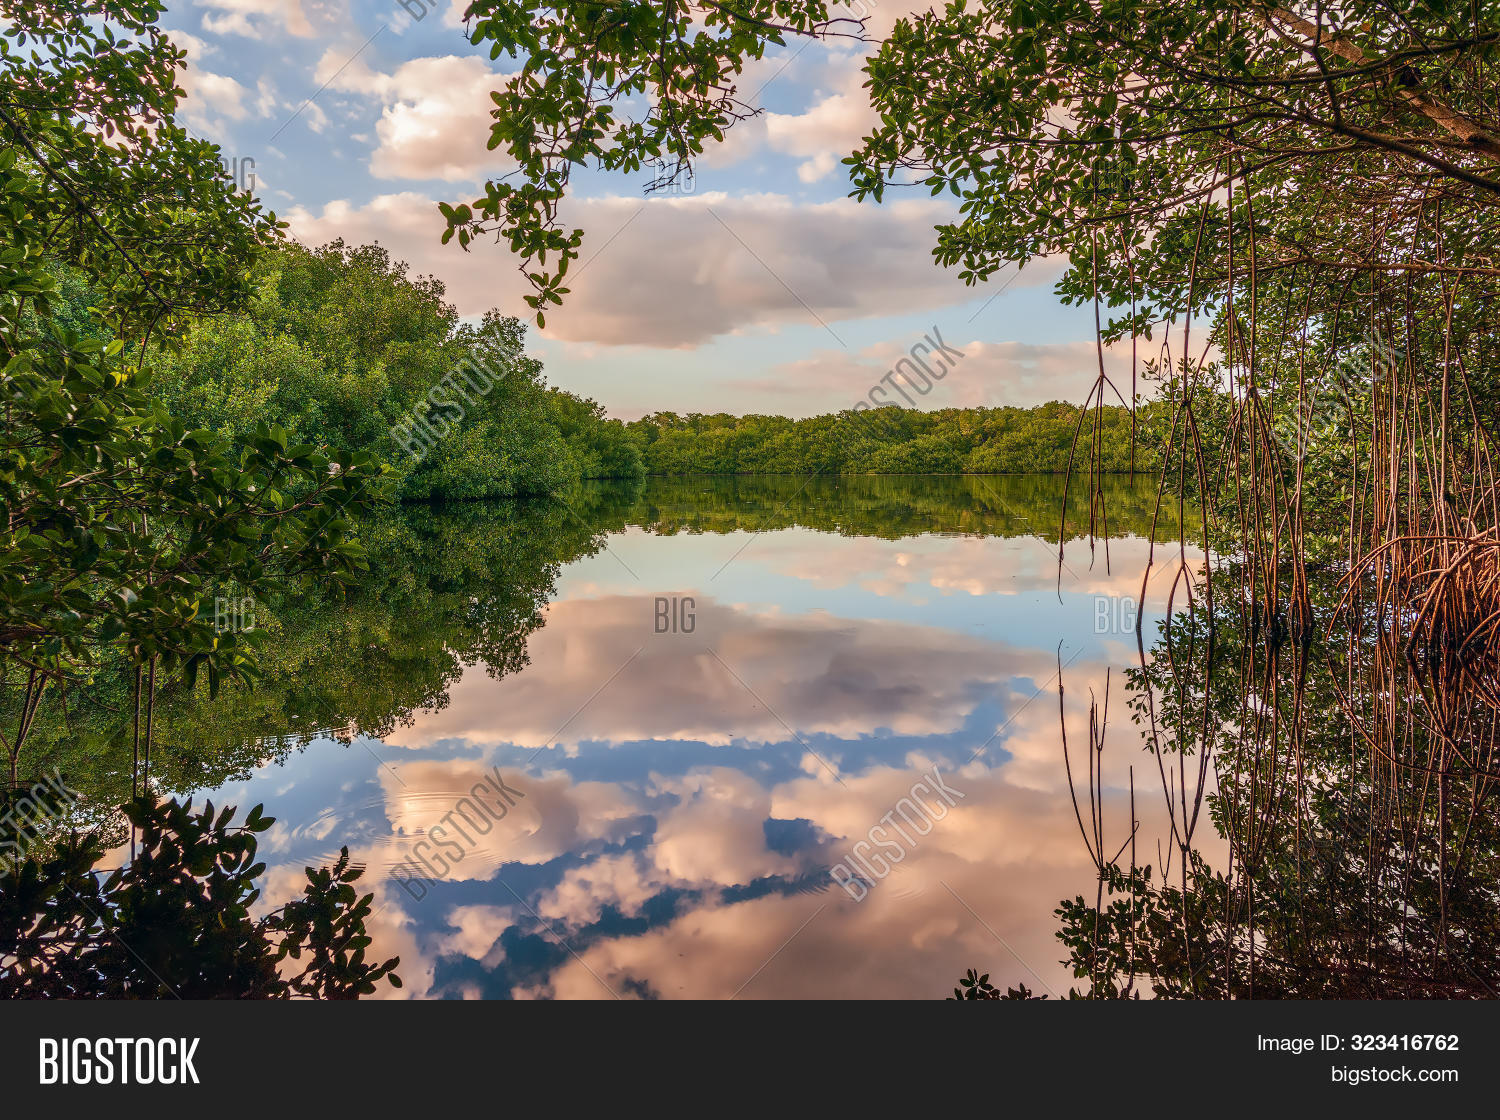 Coot Bay Pond in Everglades National Park. Florida. USA